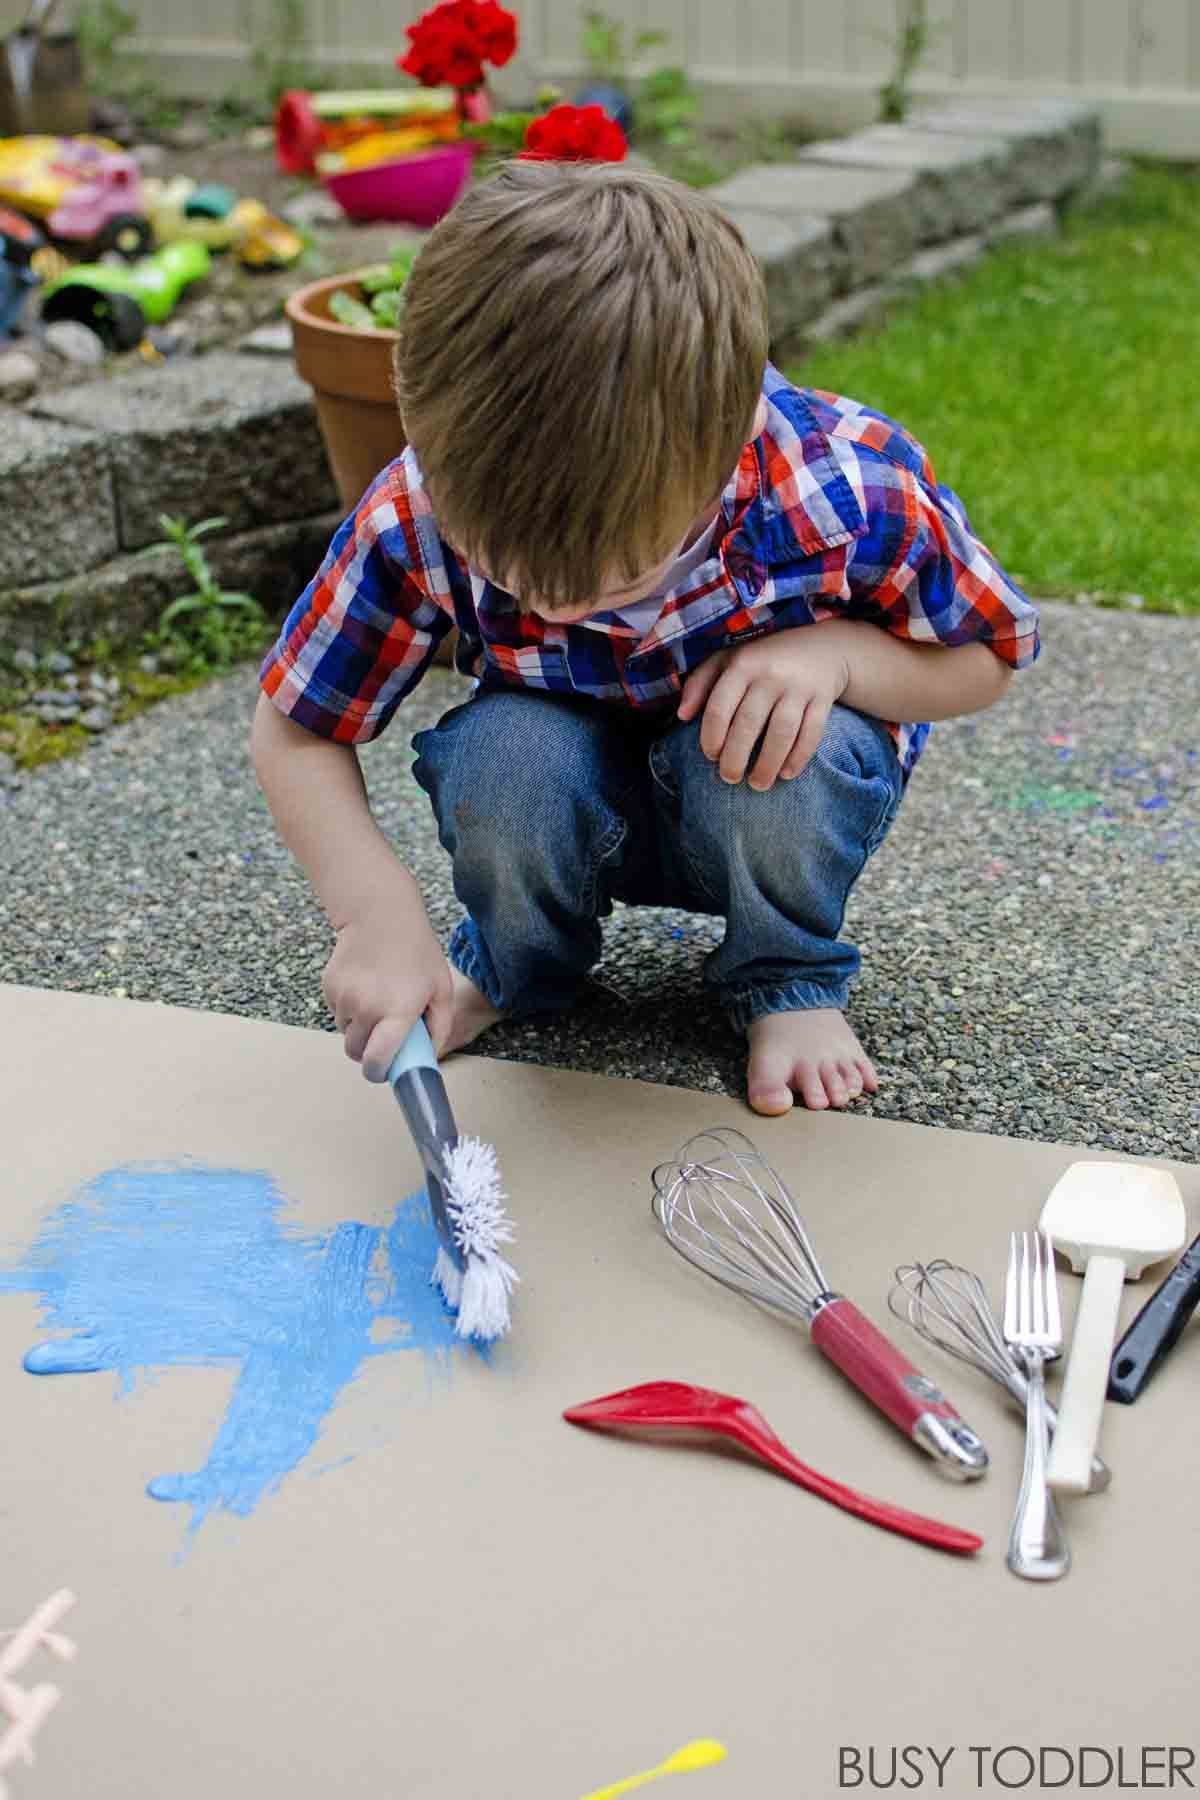 Kitchen Tools as Paint Brushes Busy Toddler